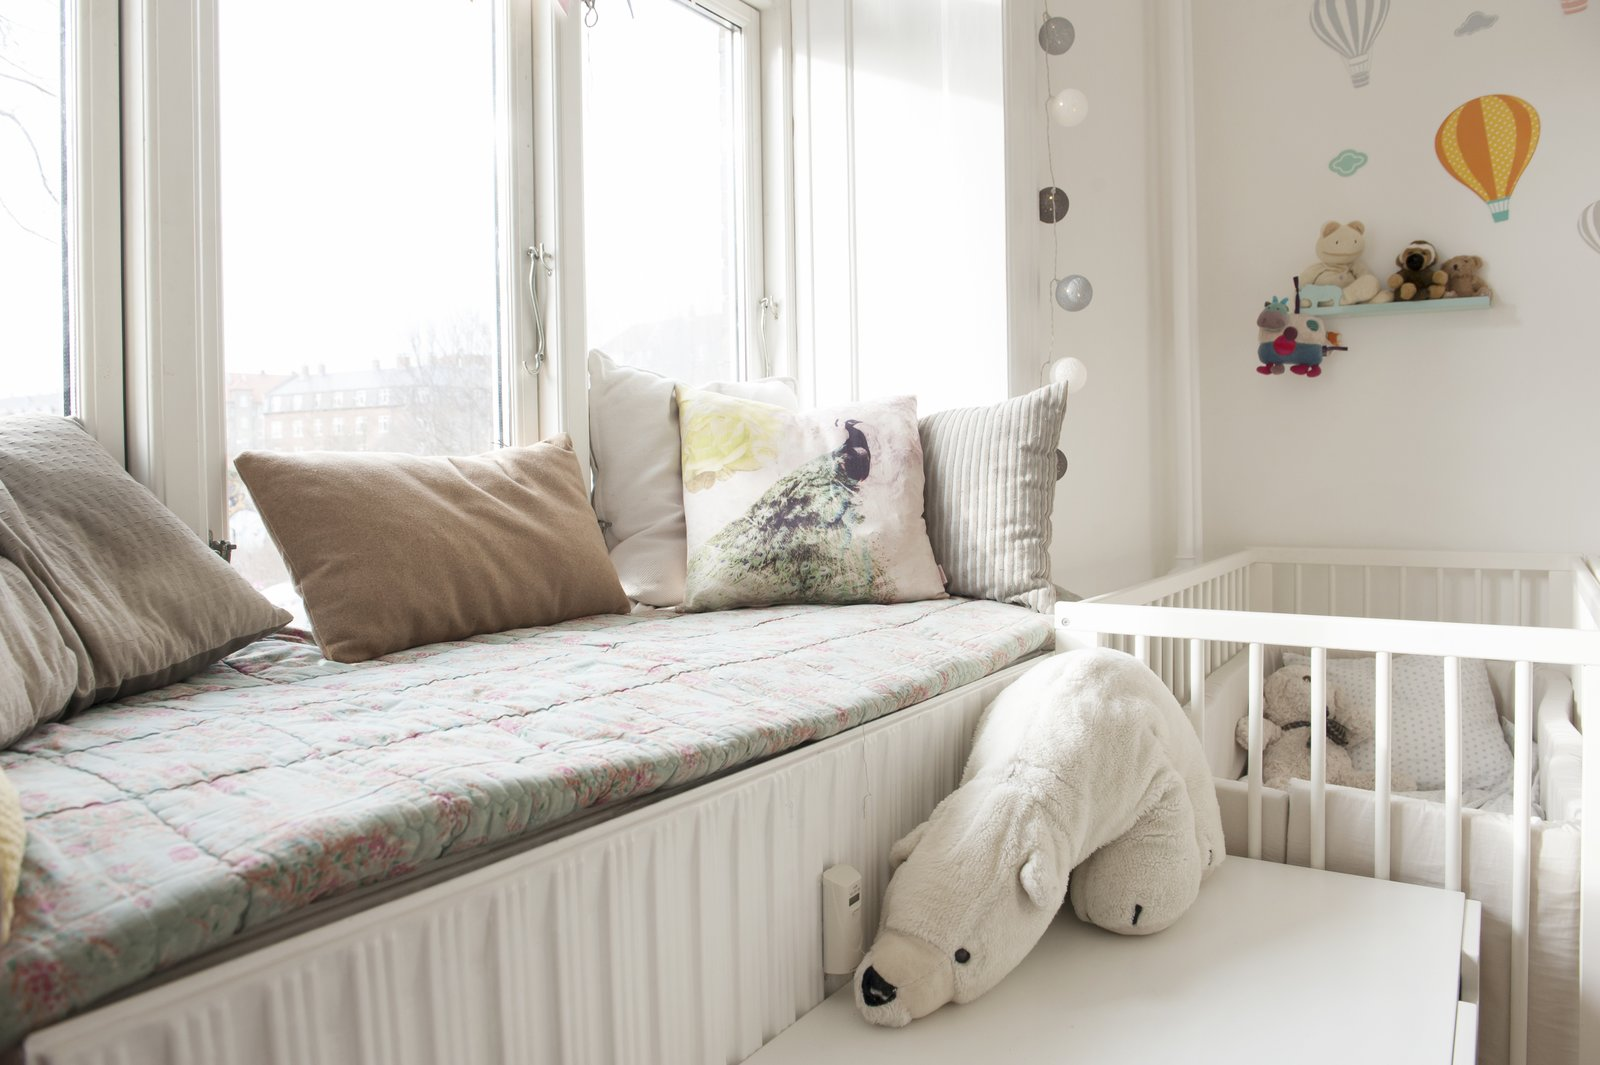 Kids Room, Bed, Bedroom Room Type, and Toddler Age children's bedroom with window perch   Pretty and Sweet Family Flat by Petra Ford